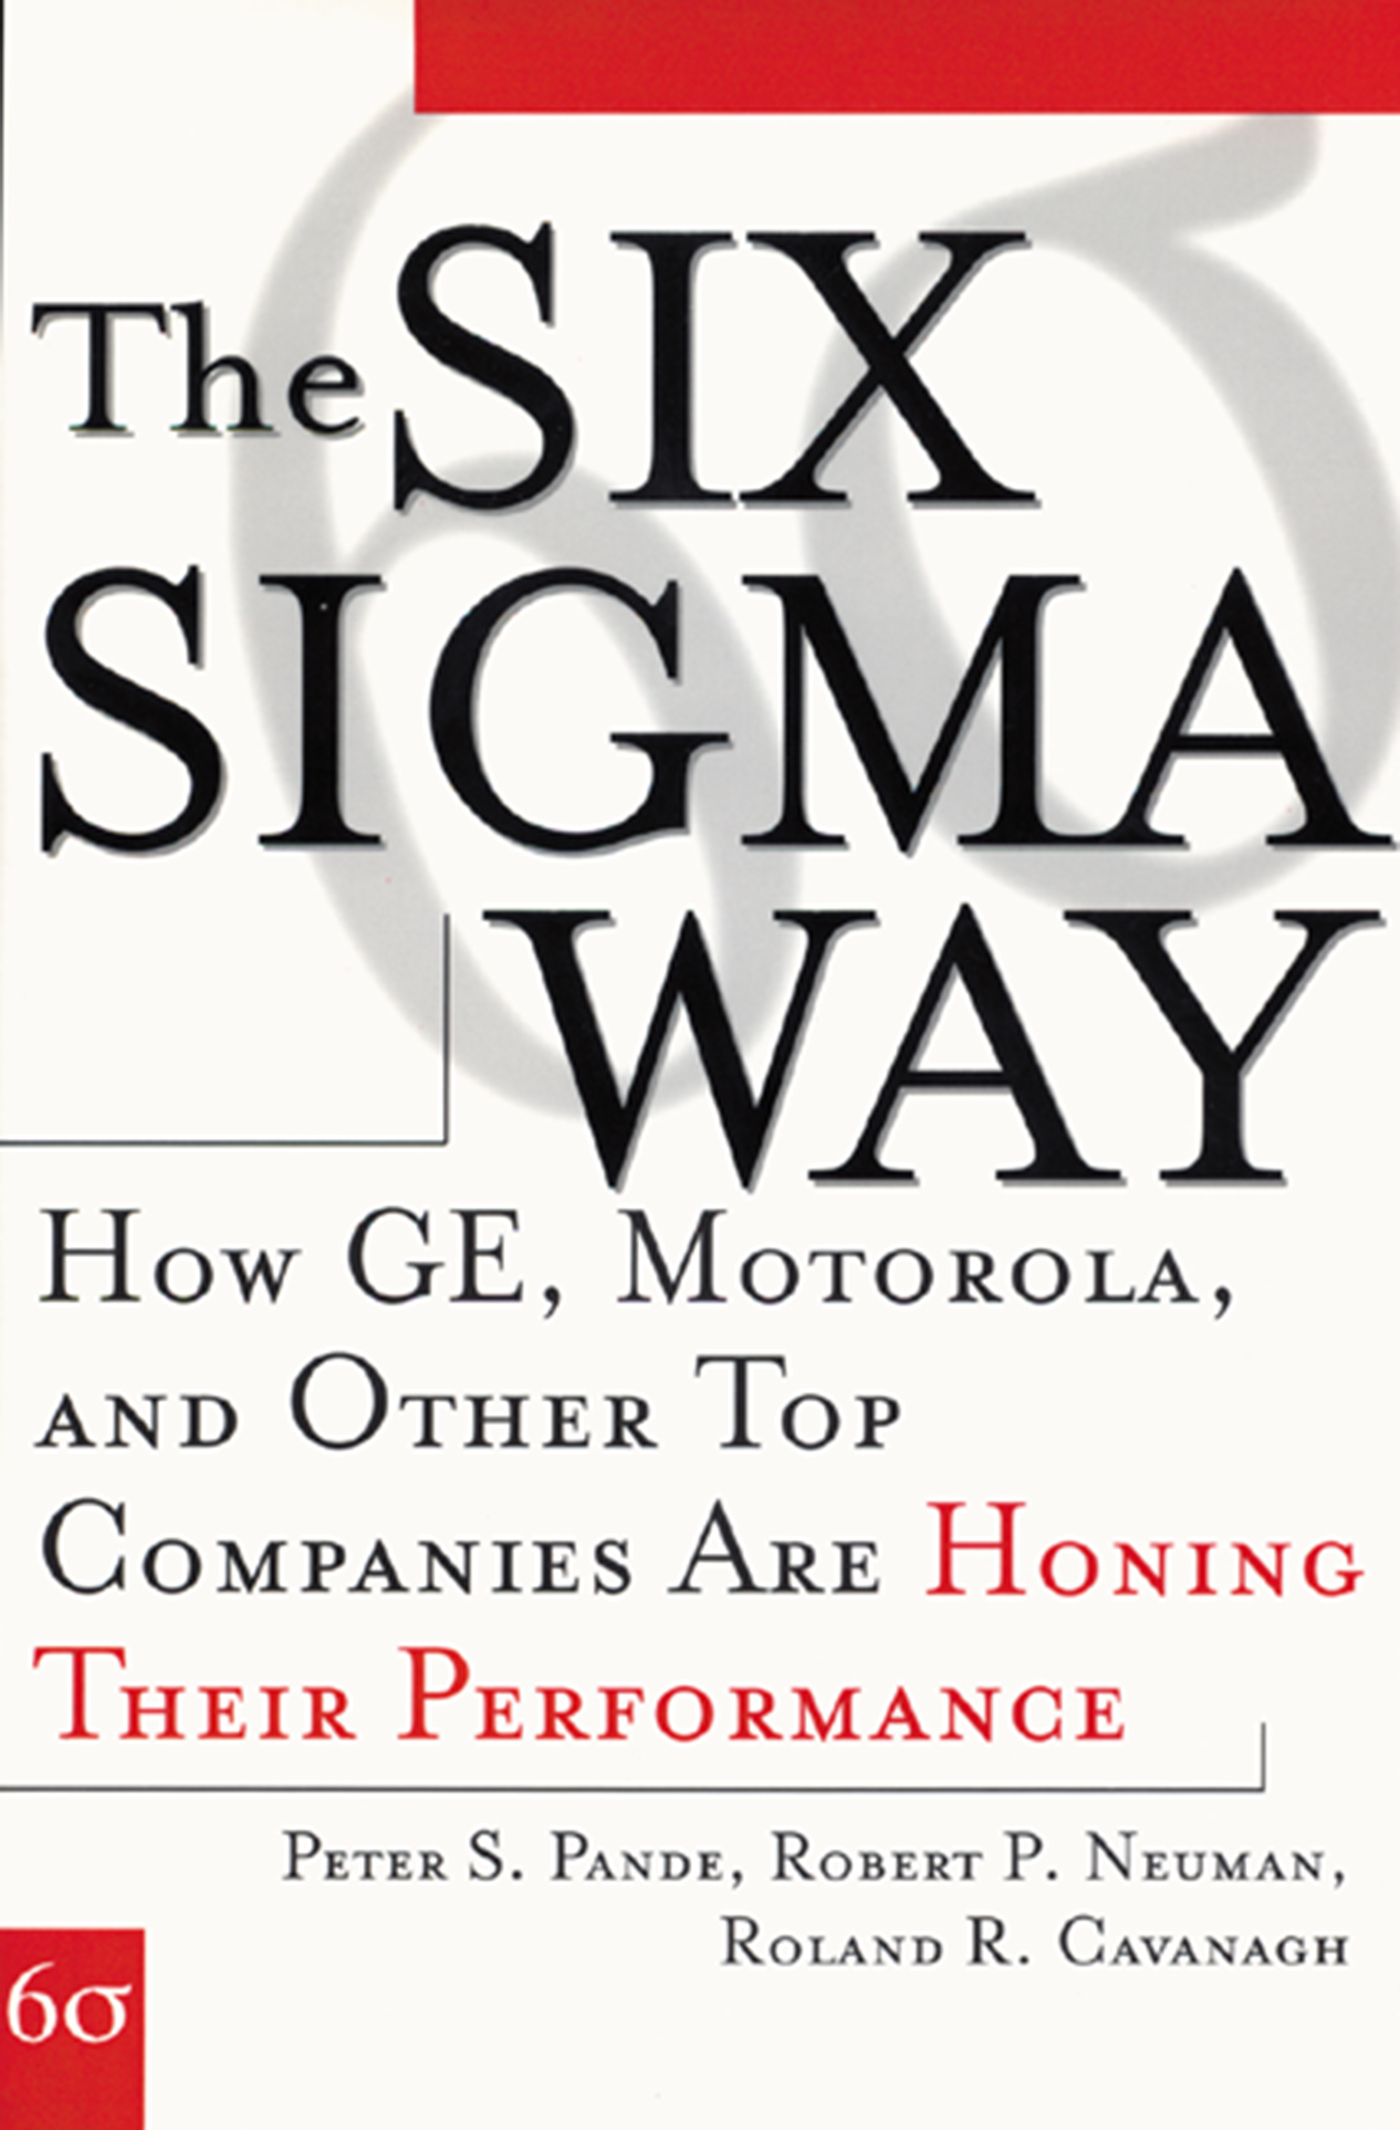 Download Ebook The Six Sigma Way: How GE, Motorola, and Other Top Companies are Honing Their Performance by Peter S. Pande Pdf